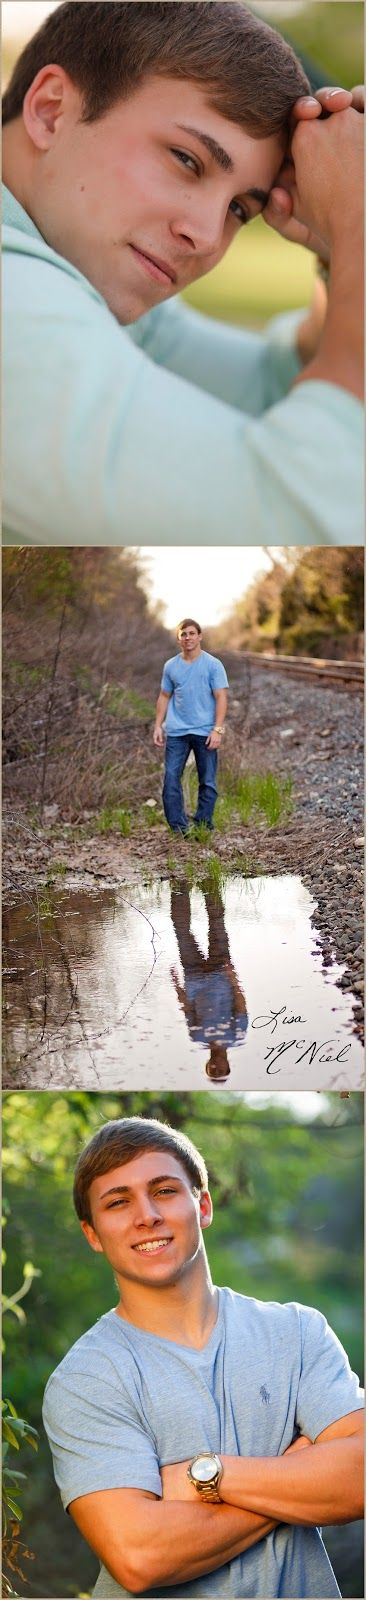 Senior pictures with your dog, boys, Click the pic for 10 more ideas by Flower Mound, Dallas photographer